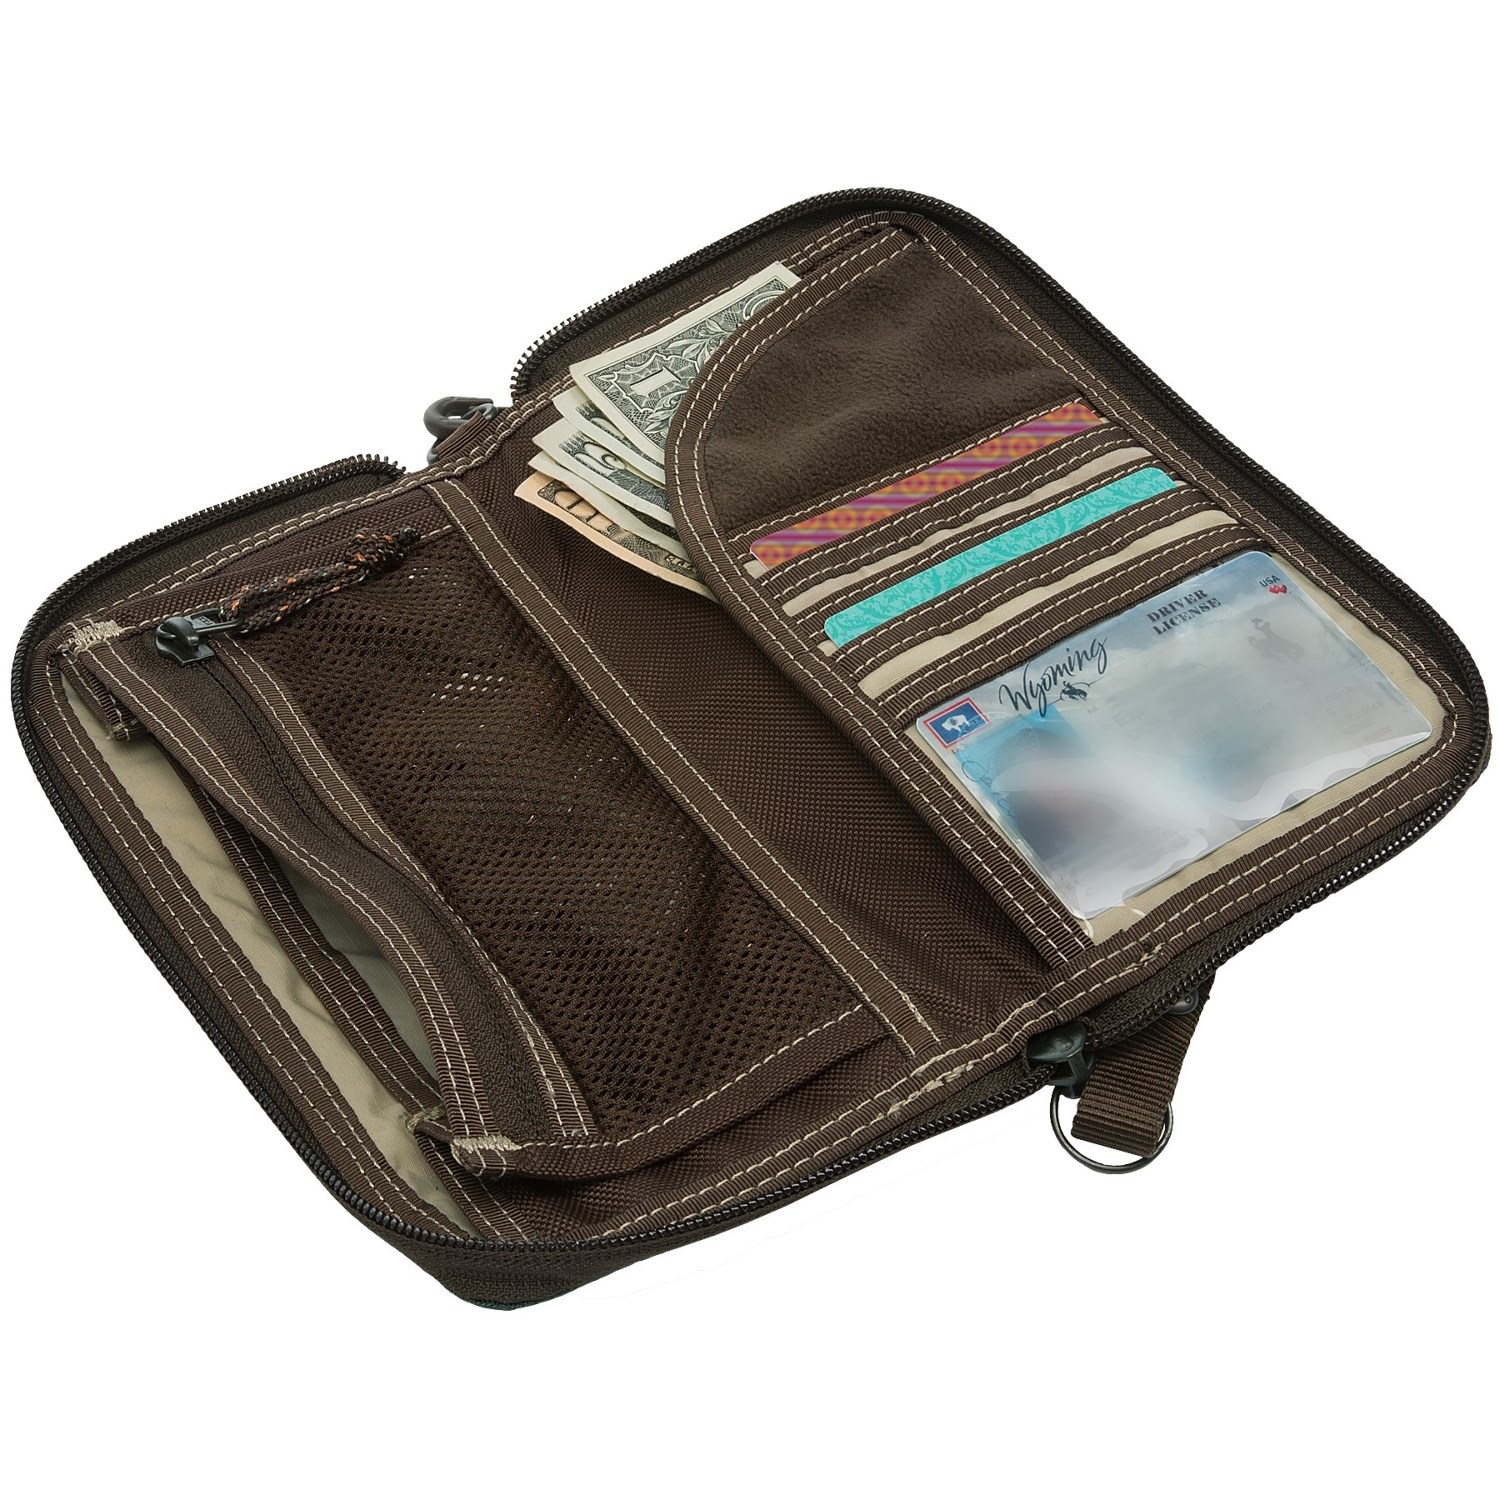 Overland Equipment Large Wallet For Women 6456t Save 33